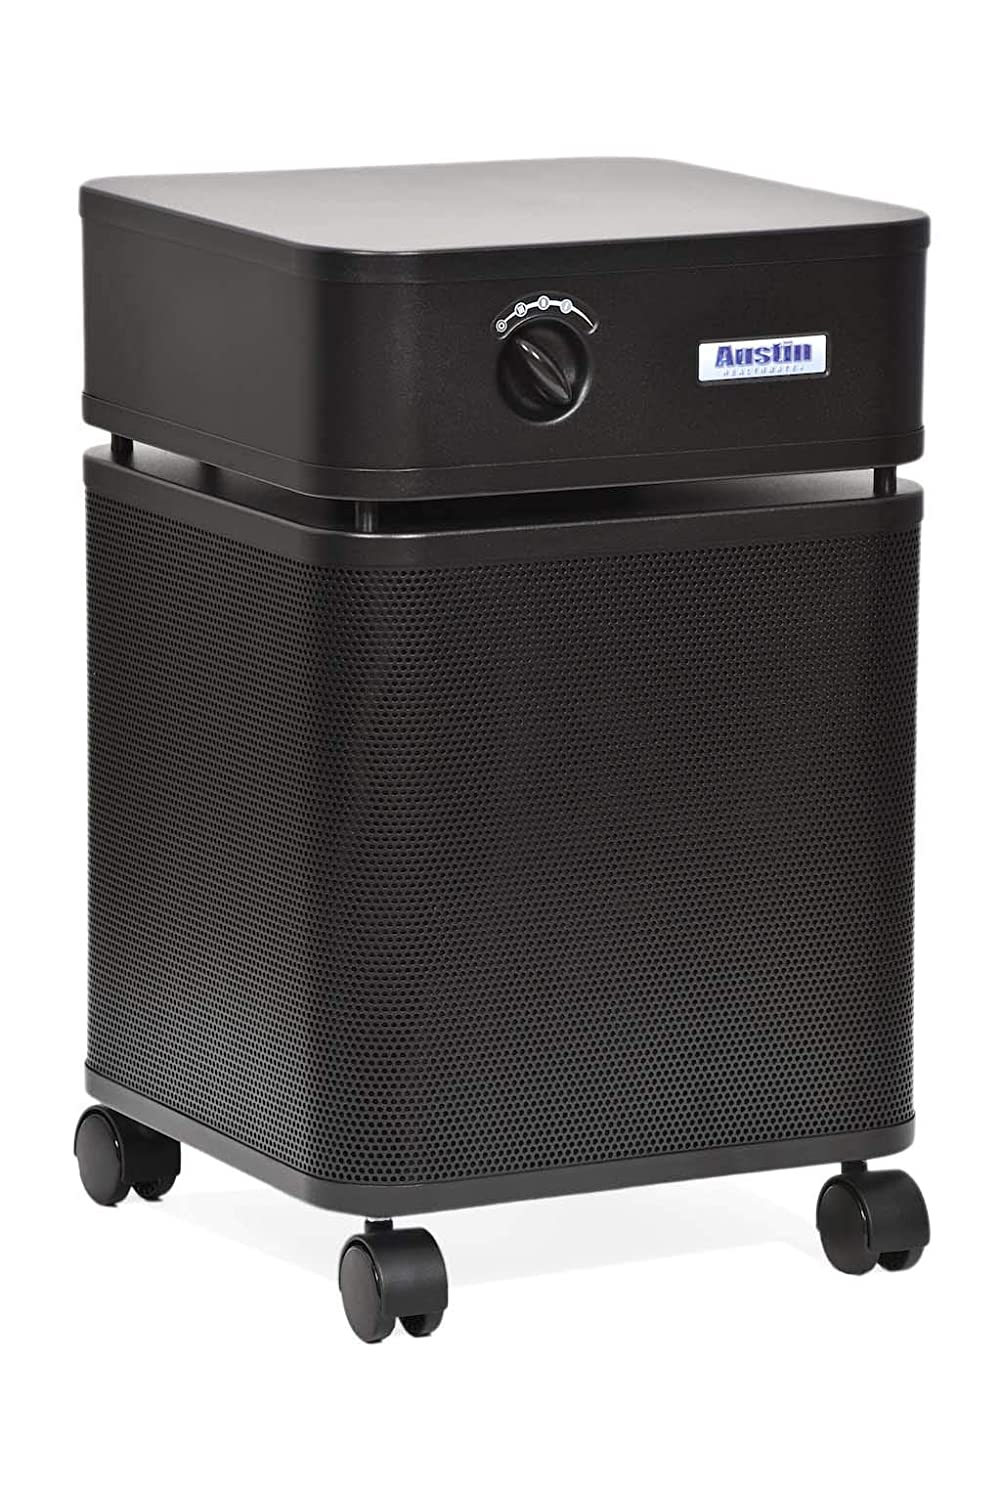 Austin Air Purifier Healthmate Plus with Superblend Filter – Color Black